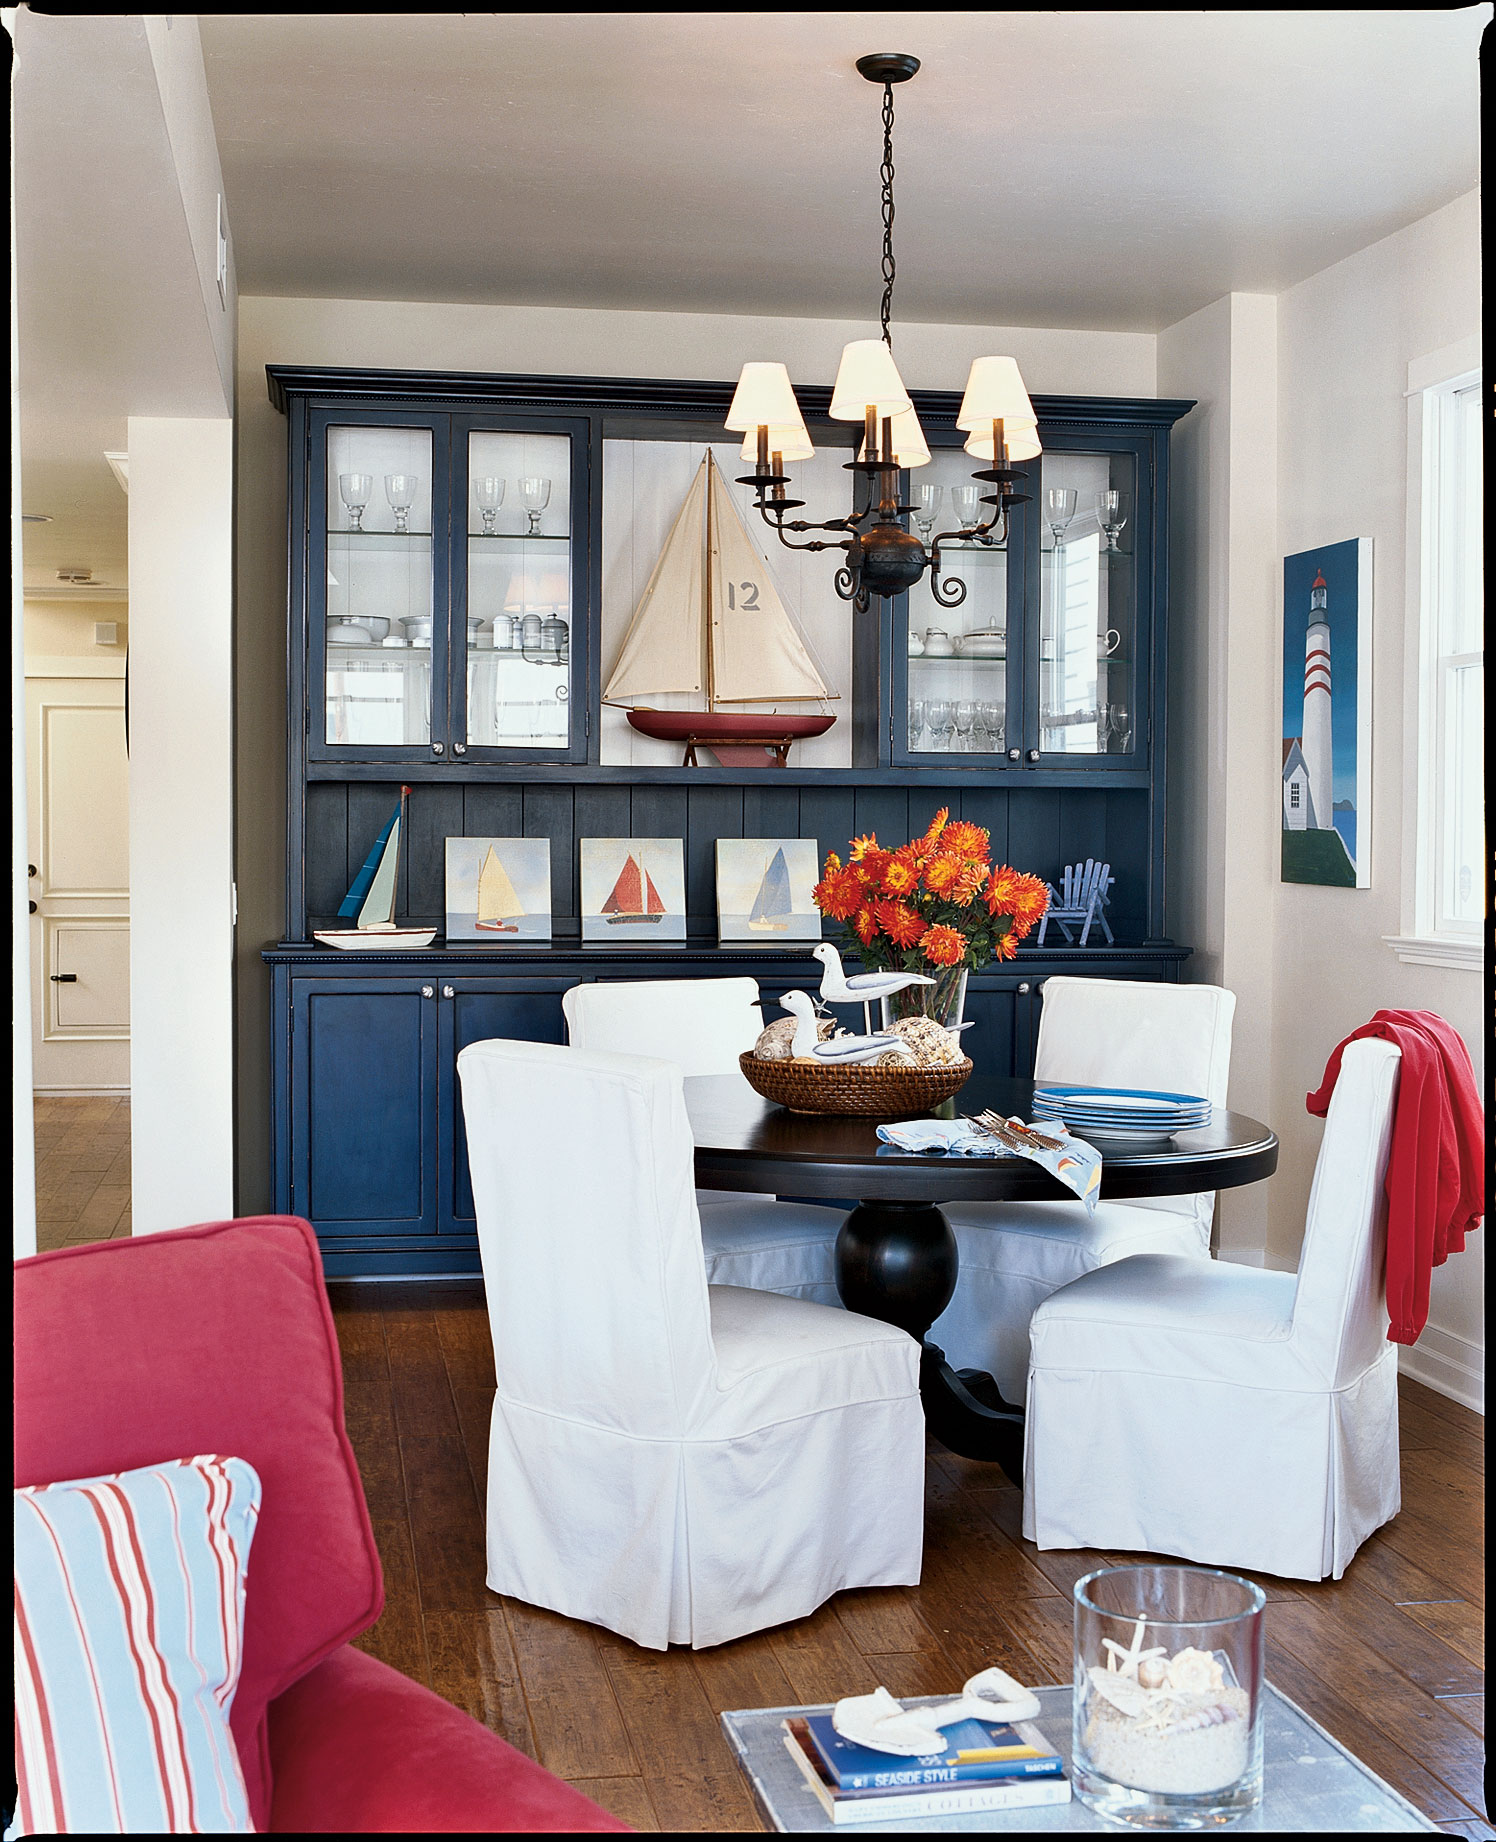 The family's dining room also features nautical elements and a patriotic color palette of red, white, and blue. The homeowners designed the hutch and table, along with other furnishings, to fit the space and their needs.